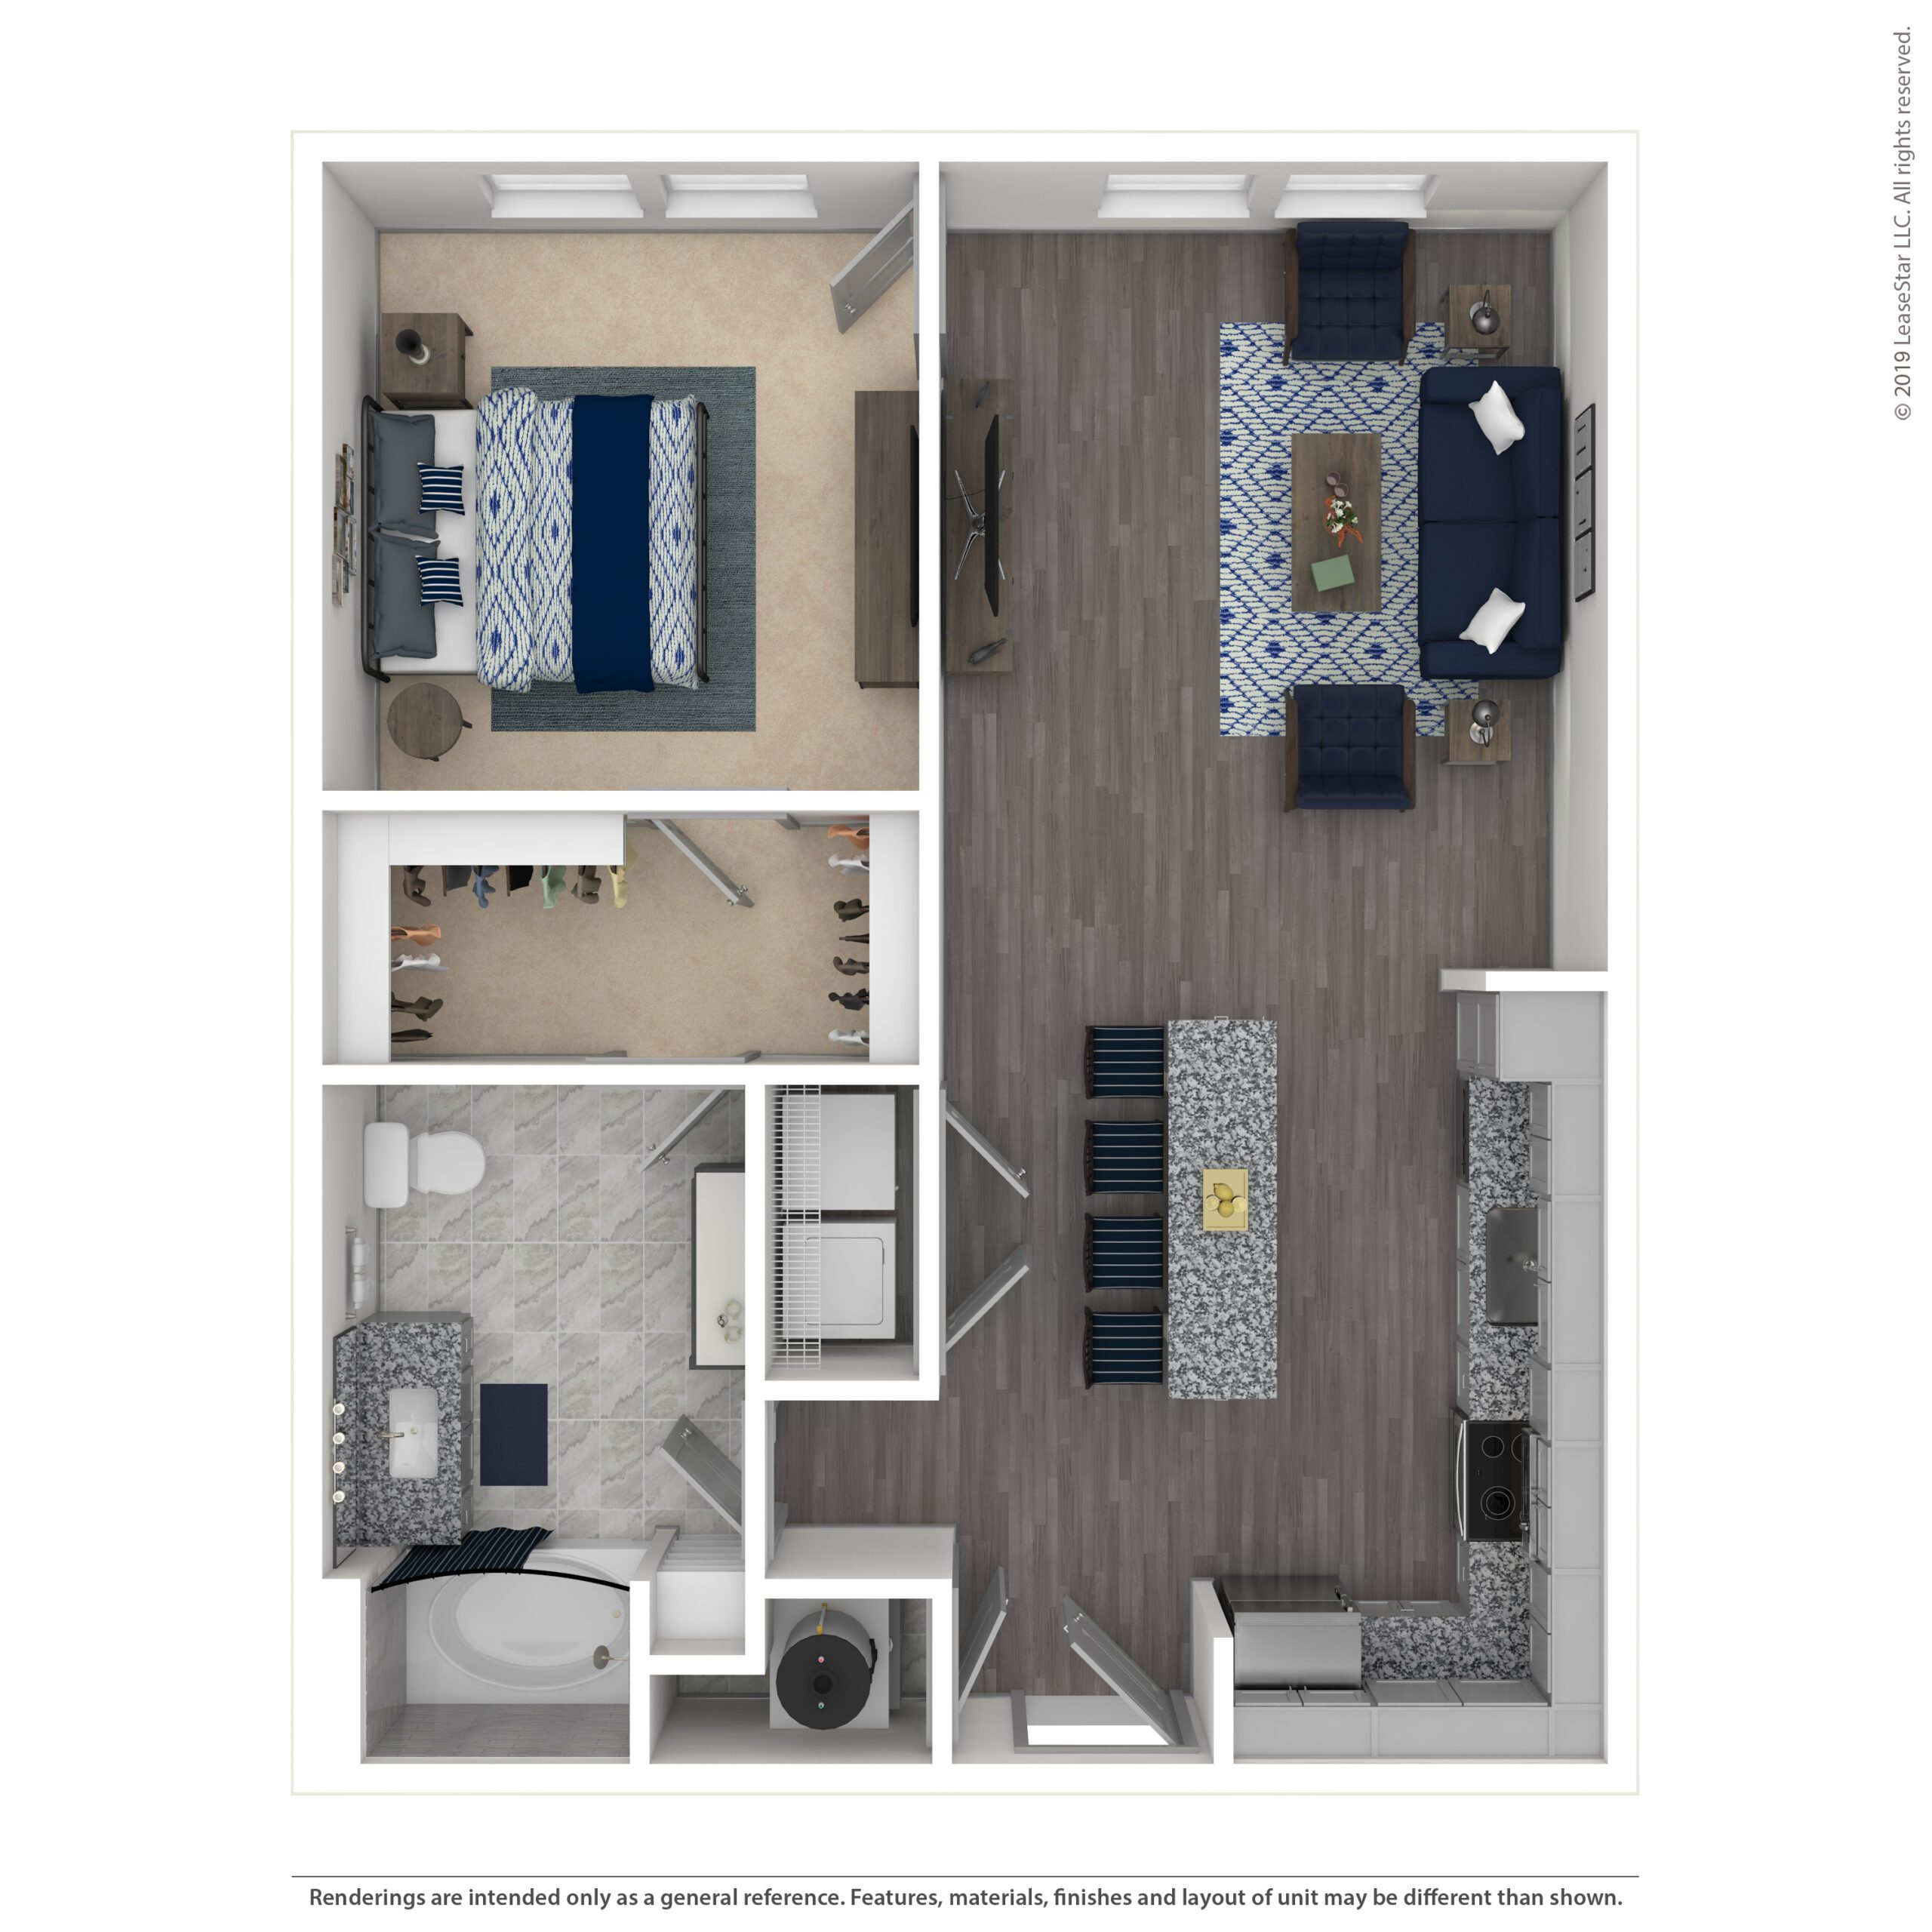 THE ASHER, A1A | 798SF | ONE BEDROOM, ONE BATH